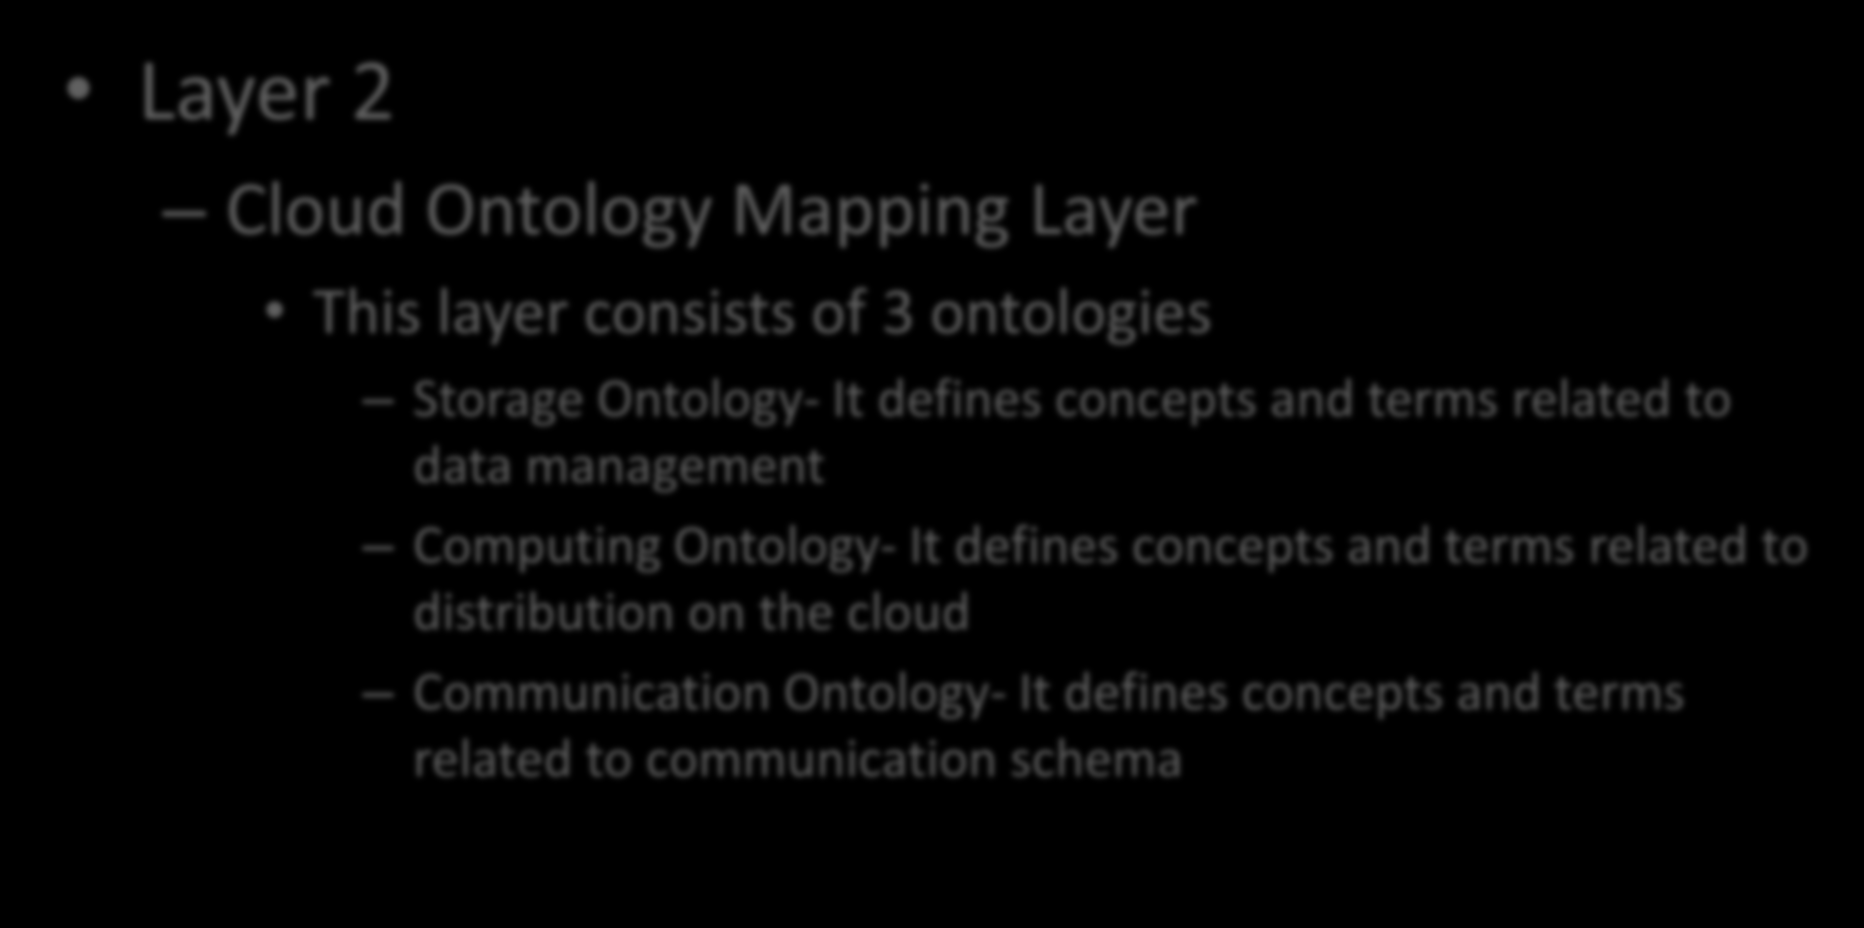 SOCCA Layers Layer 2 Cloud Ontology Mapping Layer This layer consists of 3 ontologies Storage Ontology- It defines concepts and terms related to data management